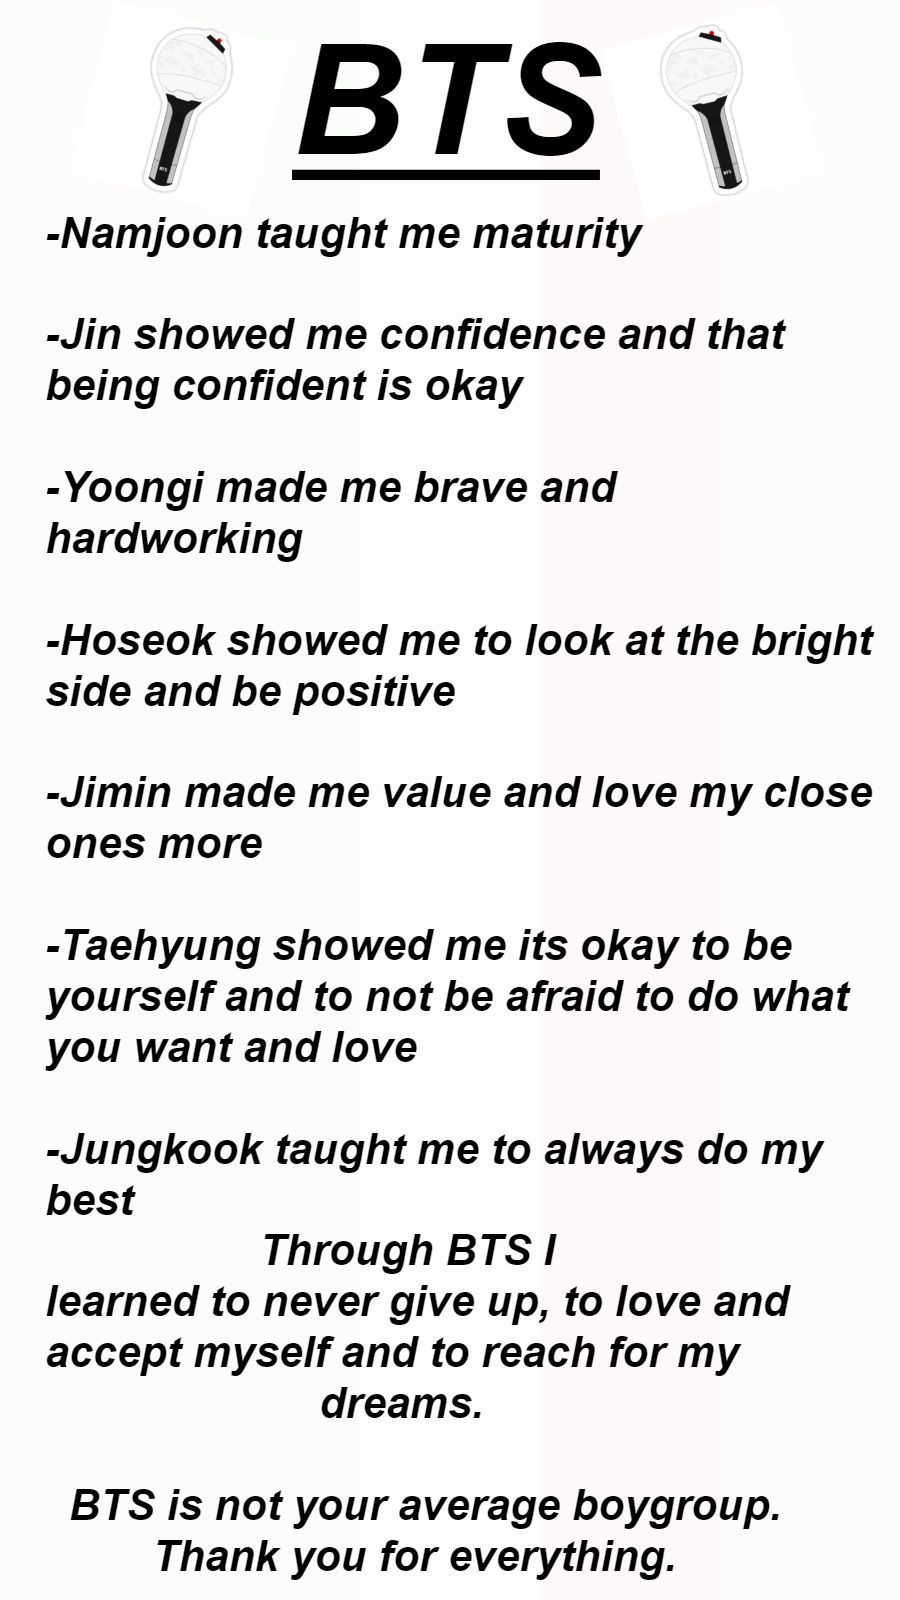 Pin By Stephanie Gomez On Bangtan The Most Beautiful And Amazing People In The World Bts Quotes Bts Wallpaper Lyrics Bts Lockscreen